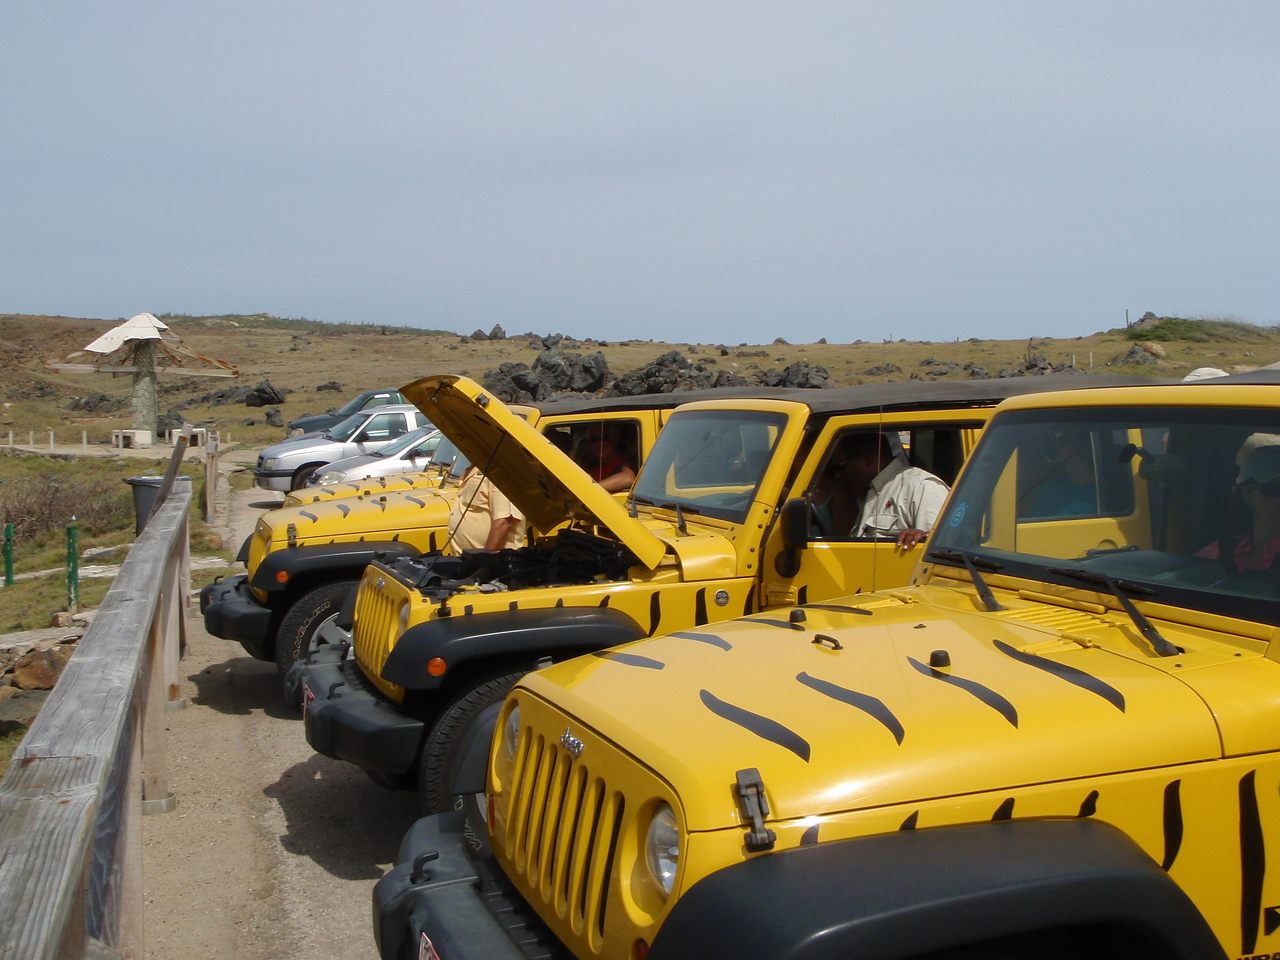 Our group experienced some technical difficulty as we prepared to leave the natural bridge.  They were able to get the jeep started after working on it for about 10 minutes.